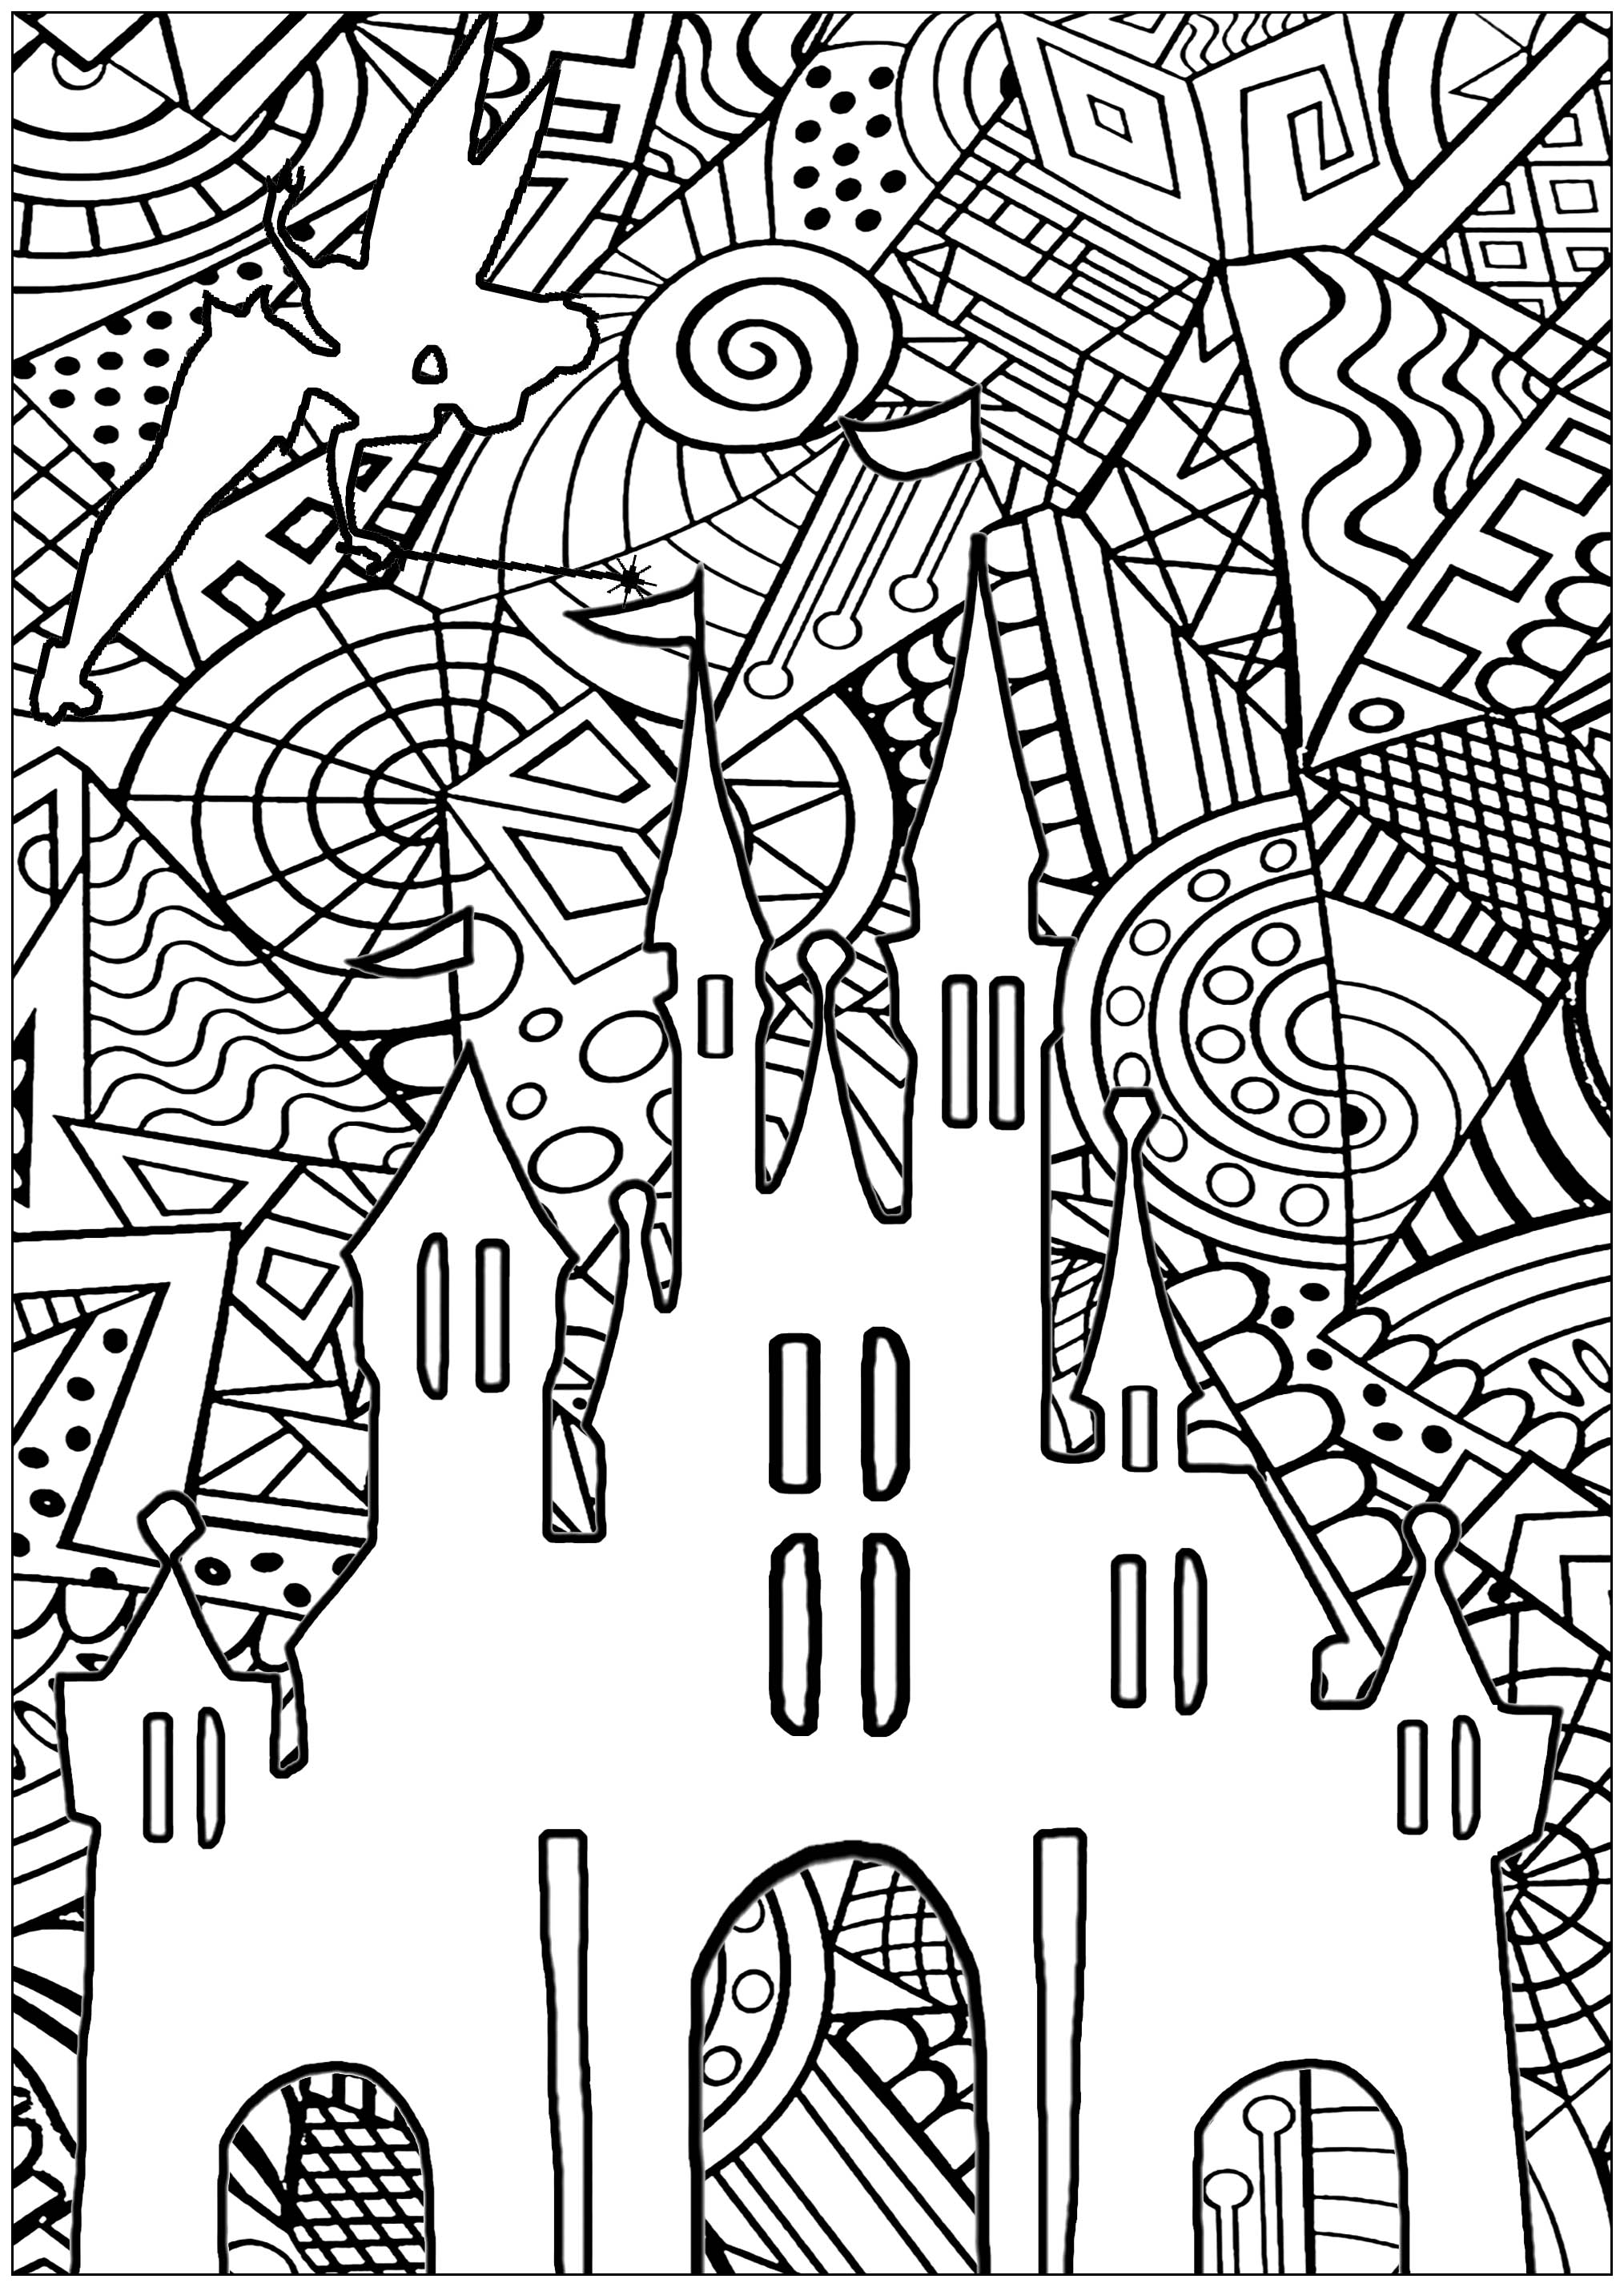 Disney castle - Return to childhood Adult Coloring Pages